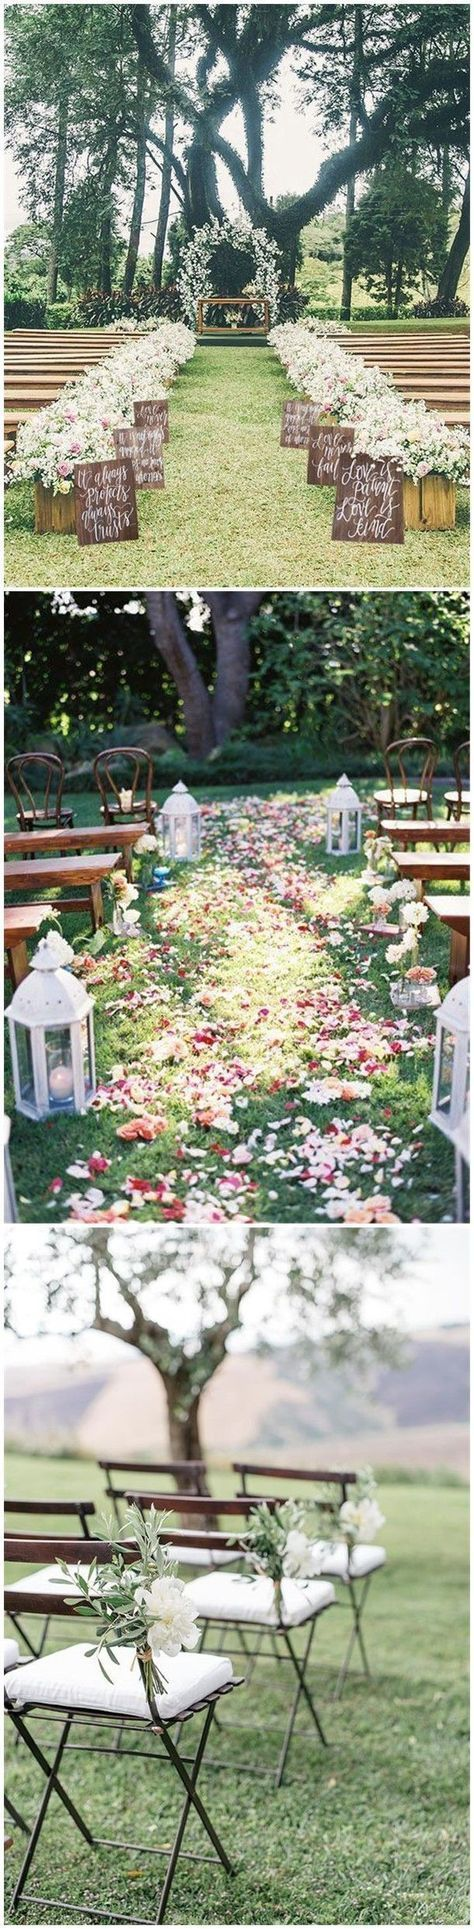 Country Weddings » 25 Rustic Outdoor Wedding Ceremony Decorations Ideas » ❤️ See more: http://www.weddinginclude.com/2017/06/rustic-outdoor-wedding-ceremony-decorations-ideas/ #homedecor #decoration #decoración #interiores